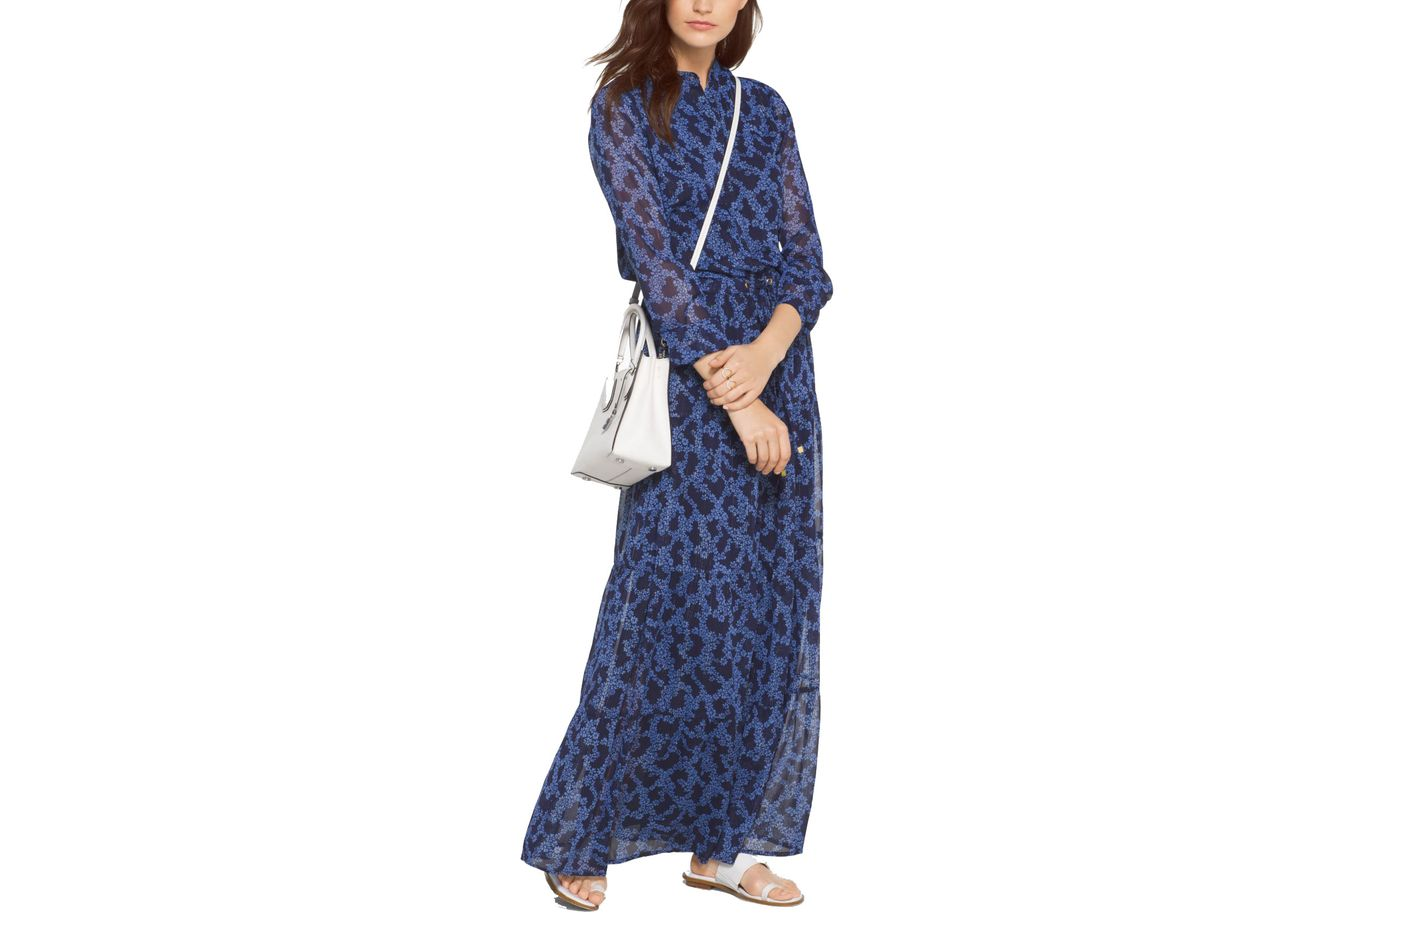 Michael by Michael Kors Botanical Chiffon Maxi Dress